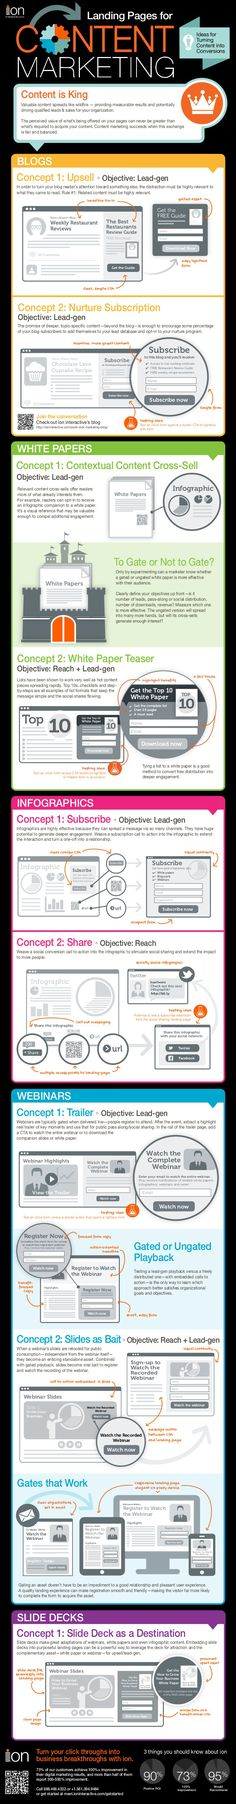 Landing pages for content marketing #infografia #infographic #marketing